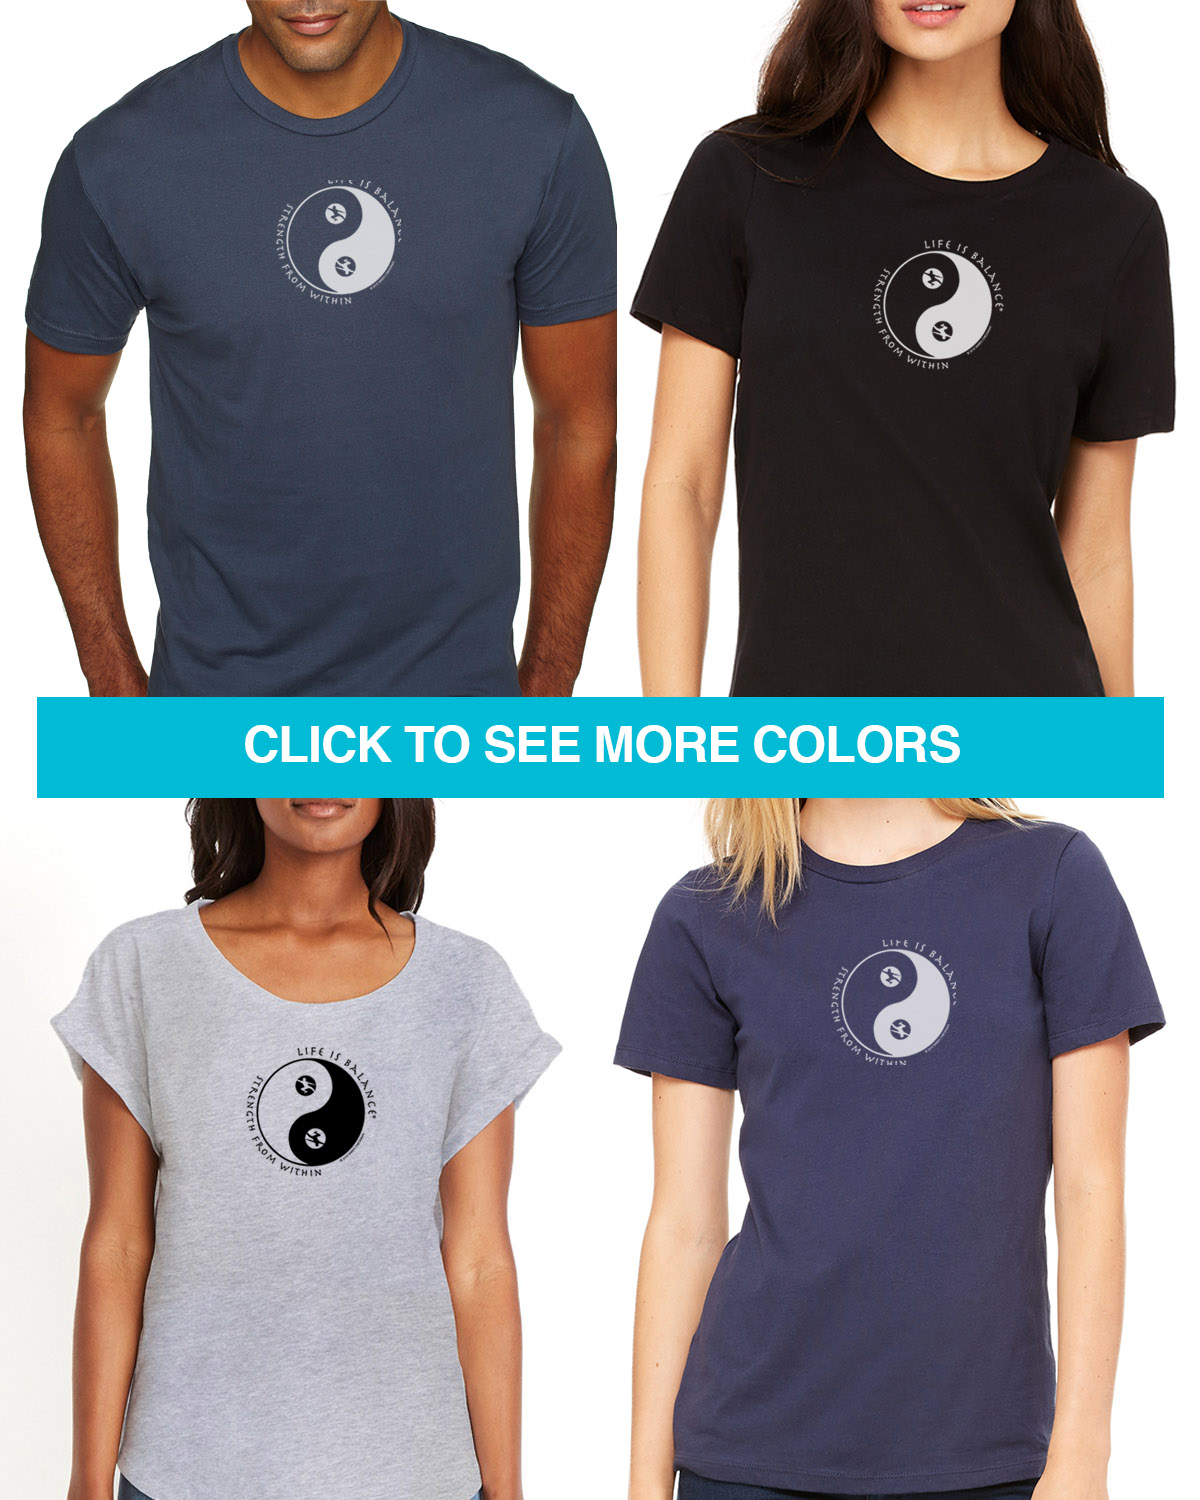 Men and Women's Tai Chi T-shirt